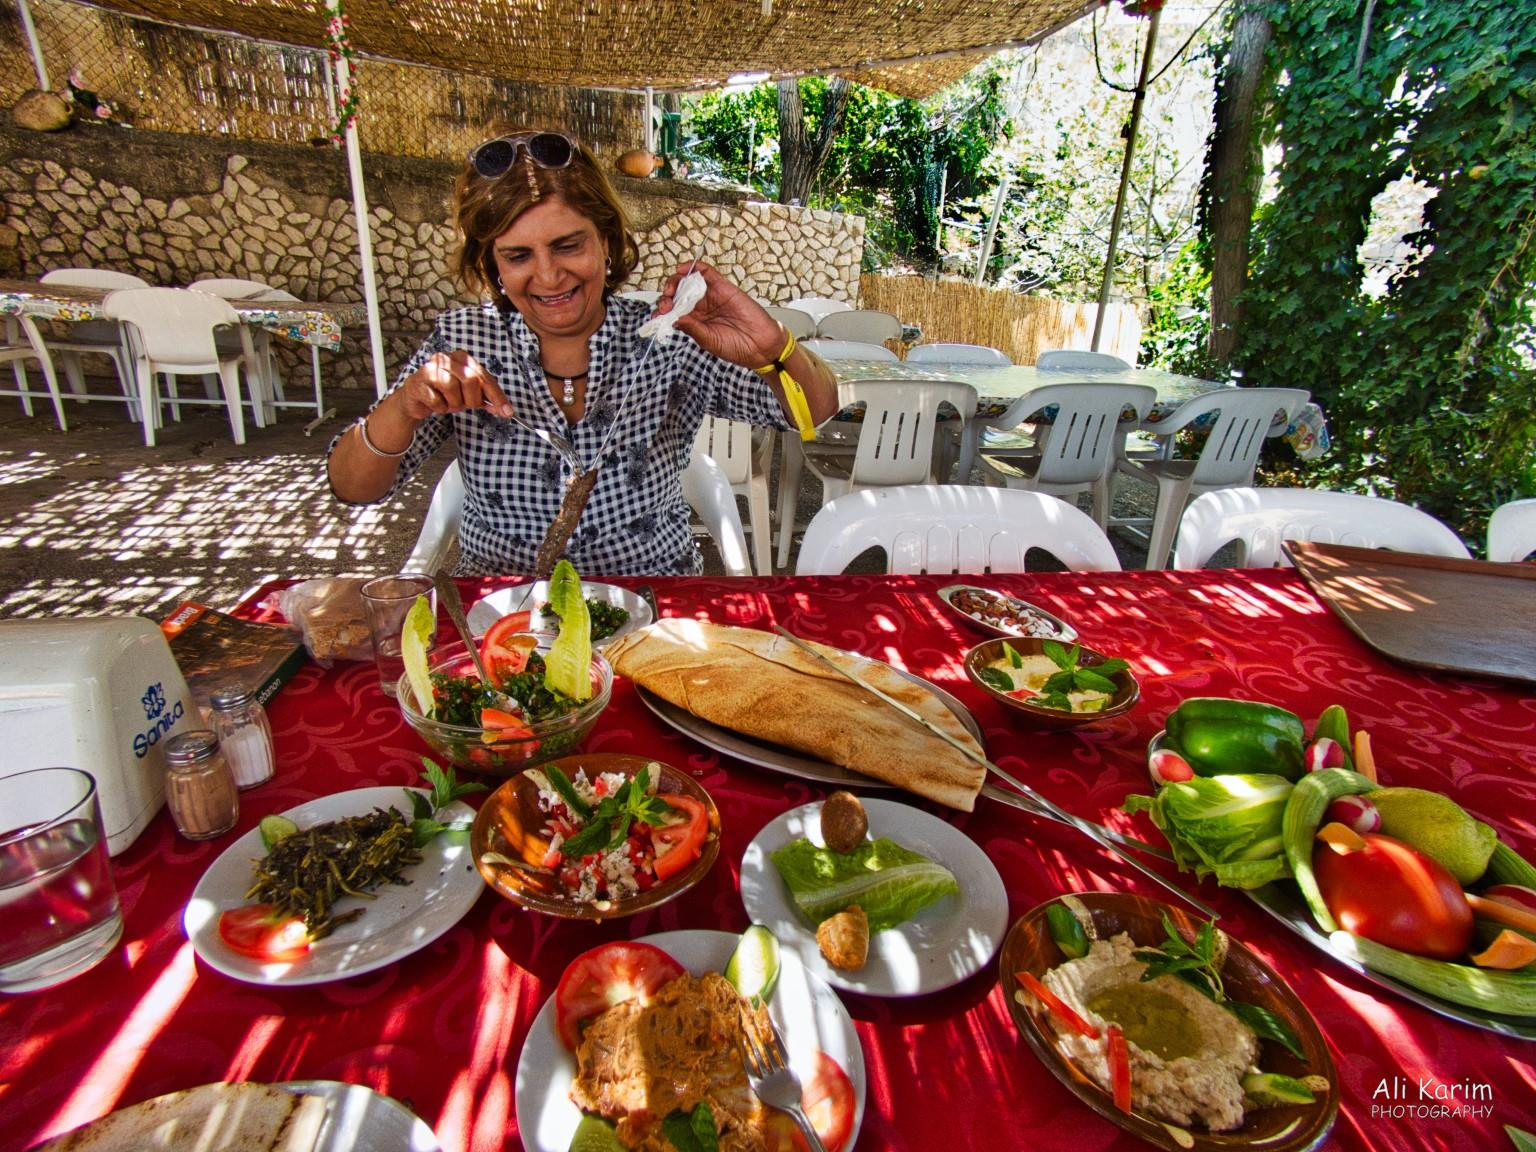 Bekaa Valley Winery, Chouf Mountains & the Druze 4 sticks of Kebabs and pita bread followed